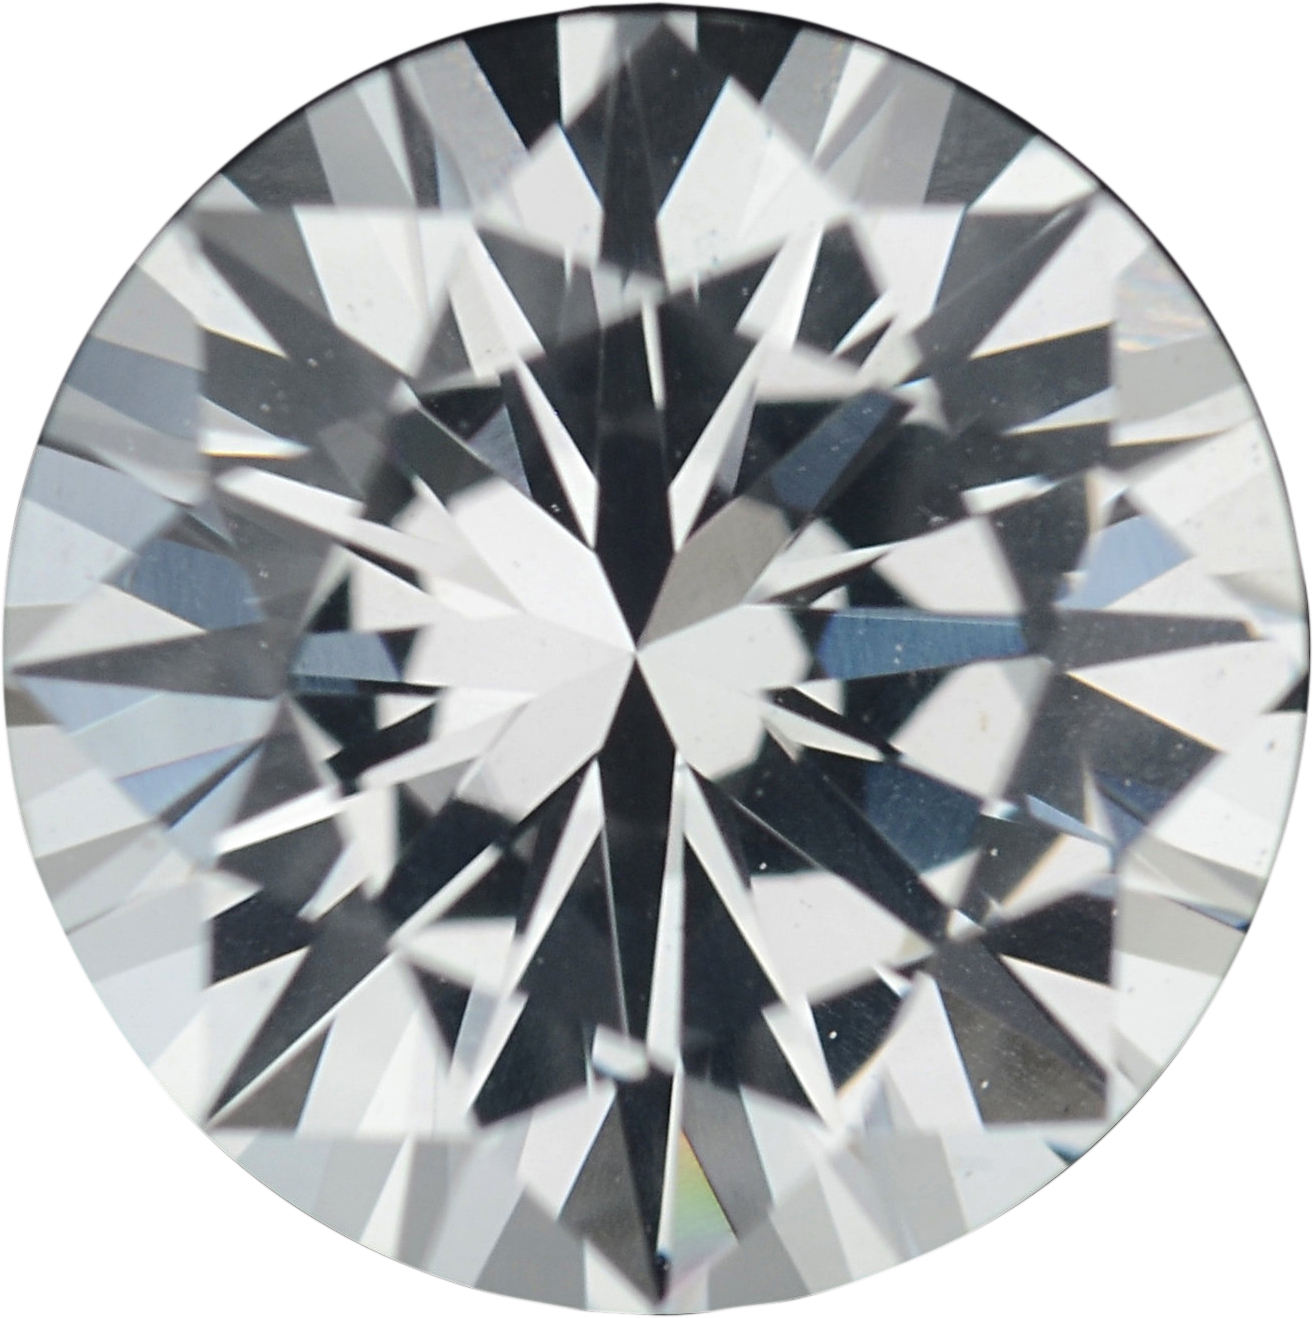 1.37 carats White Loose Sapphire Gemstone in Round Cut, 6.73 mm